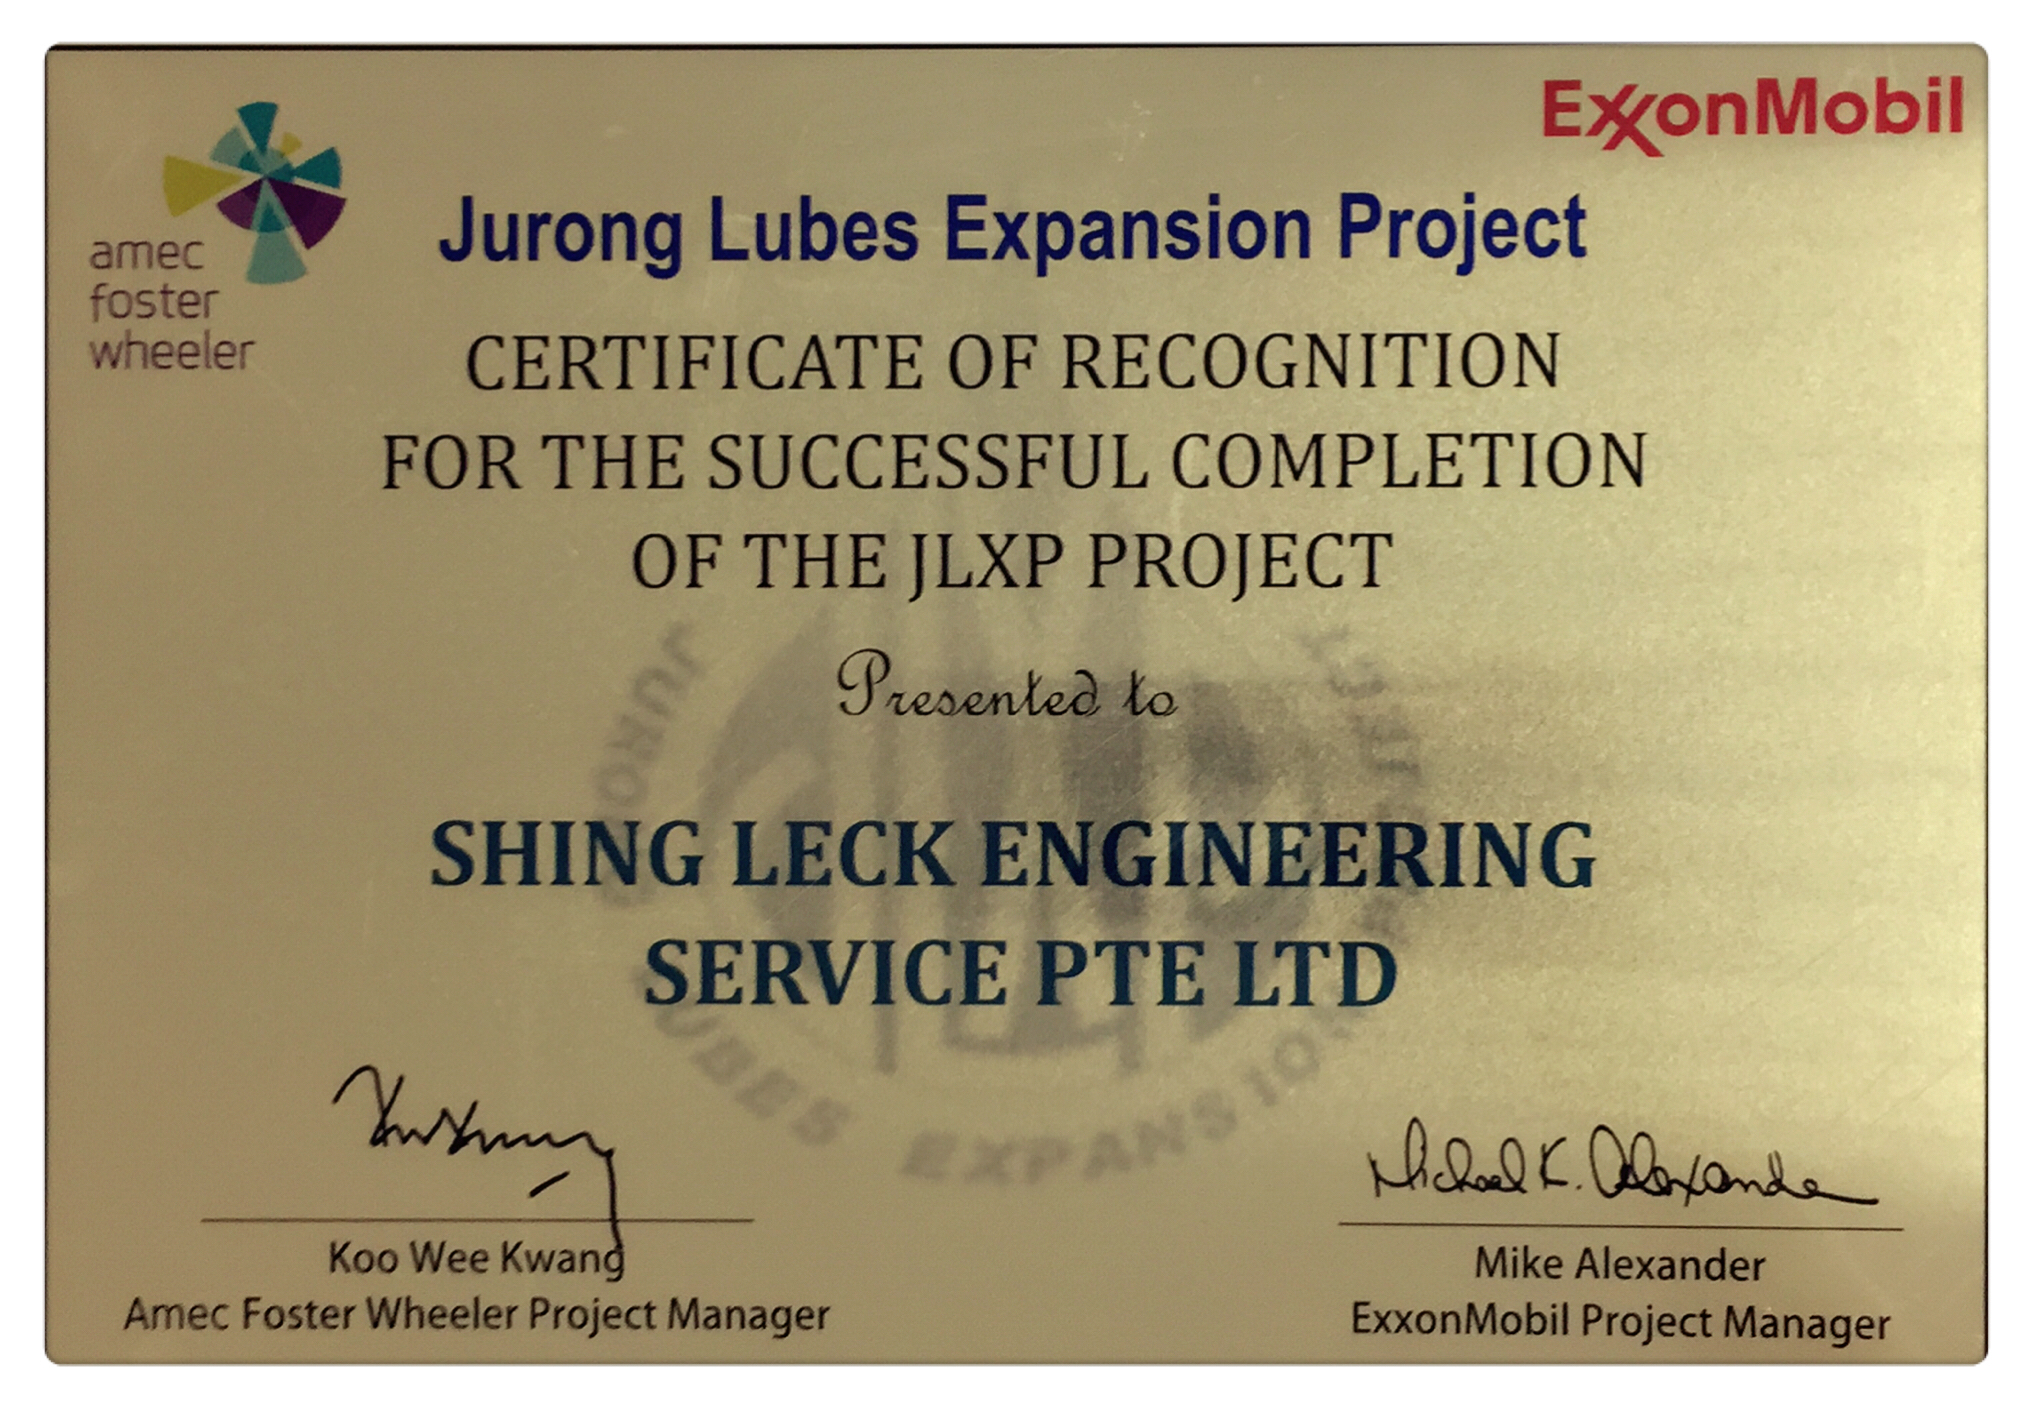 Jurong Lubes  Expansion Project Certificate of Recognition